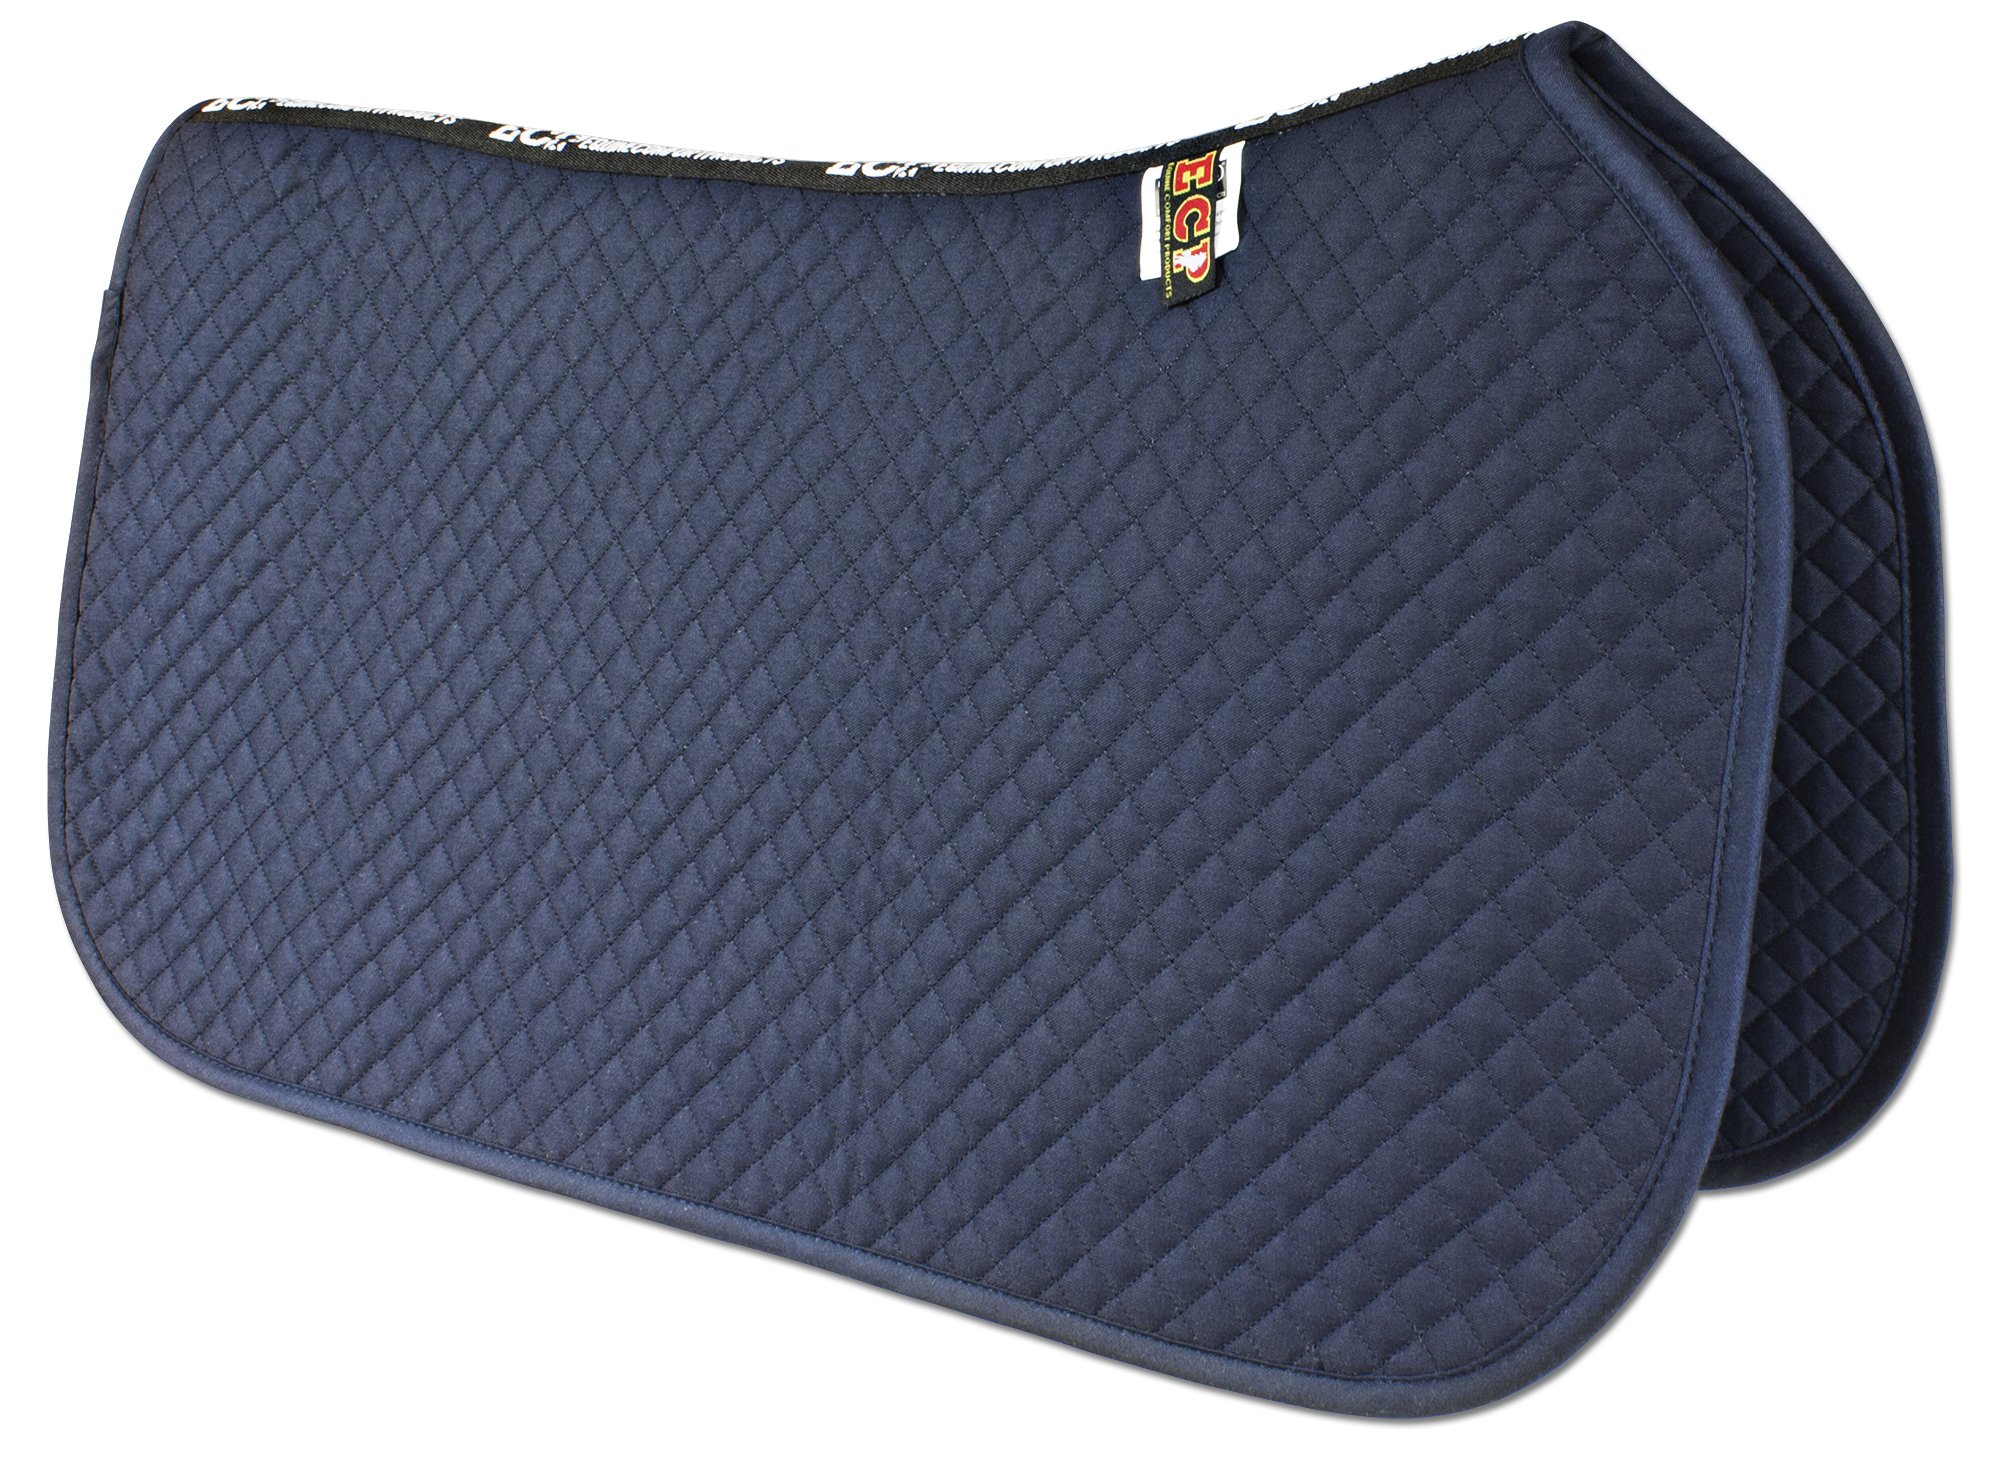 ECP Western All Purpose Diamond Quilted Cotton Saddle Pad Color Midnight Blue